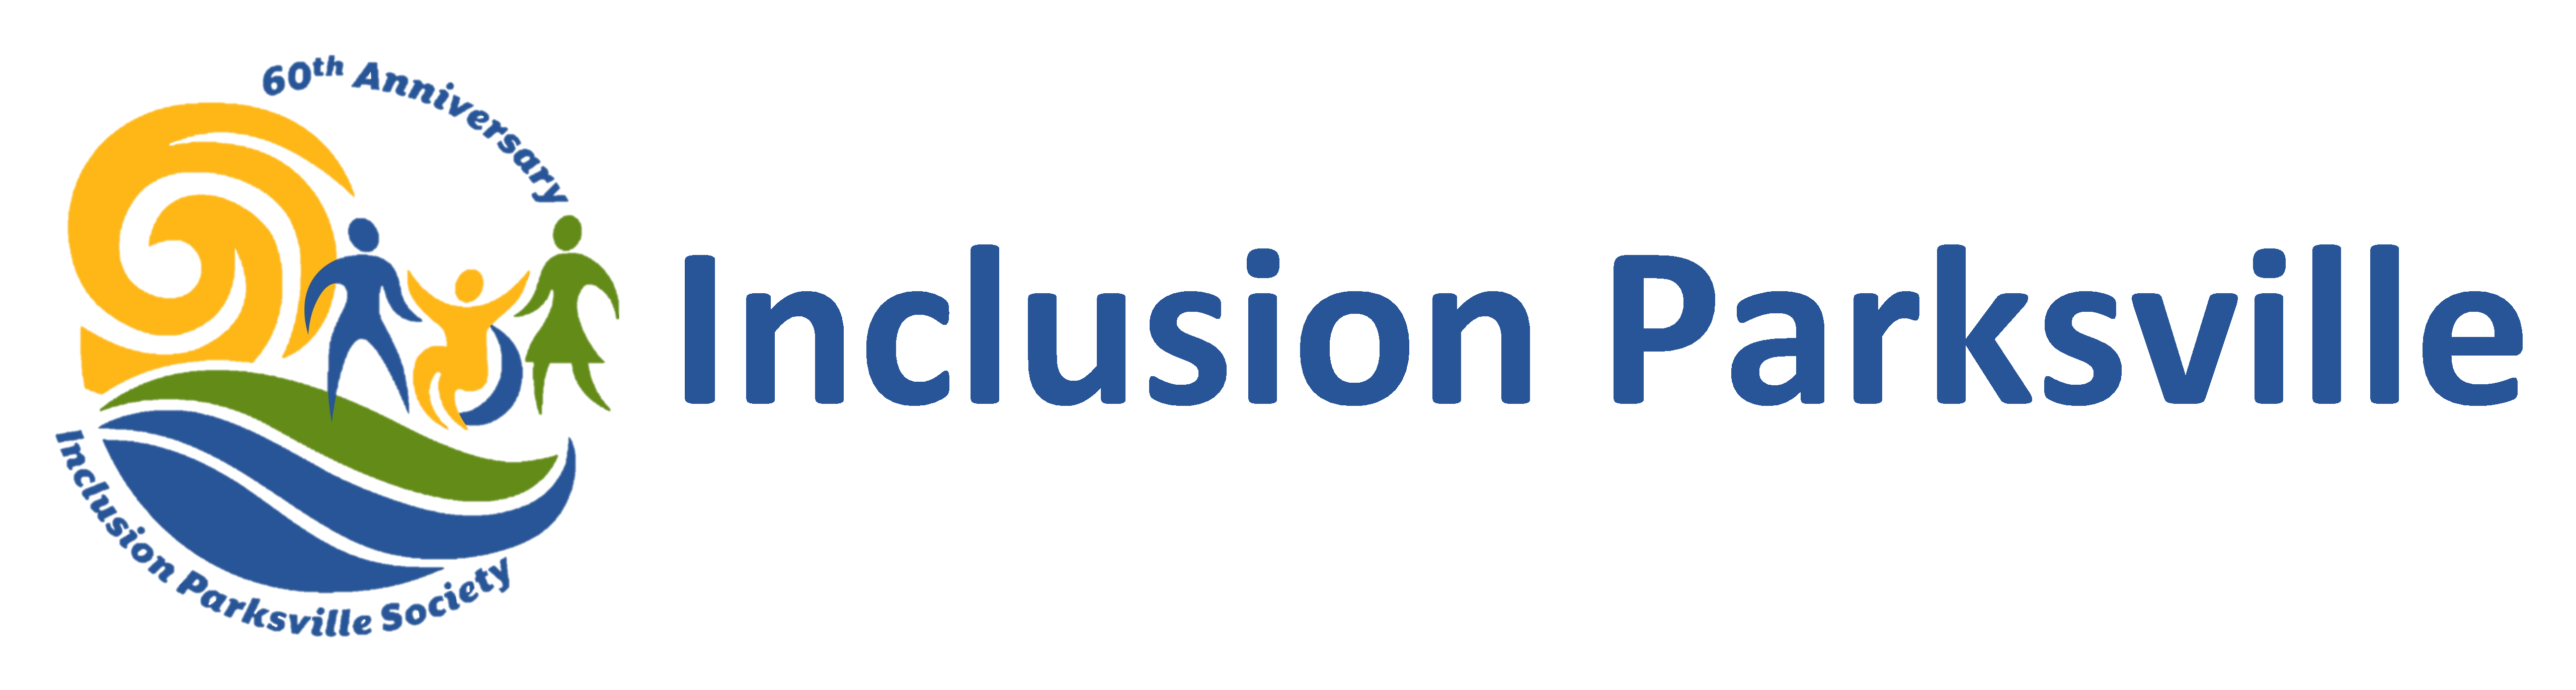 Inclusion Parksville Society logo mobile 002